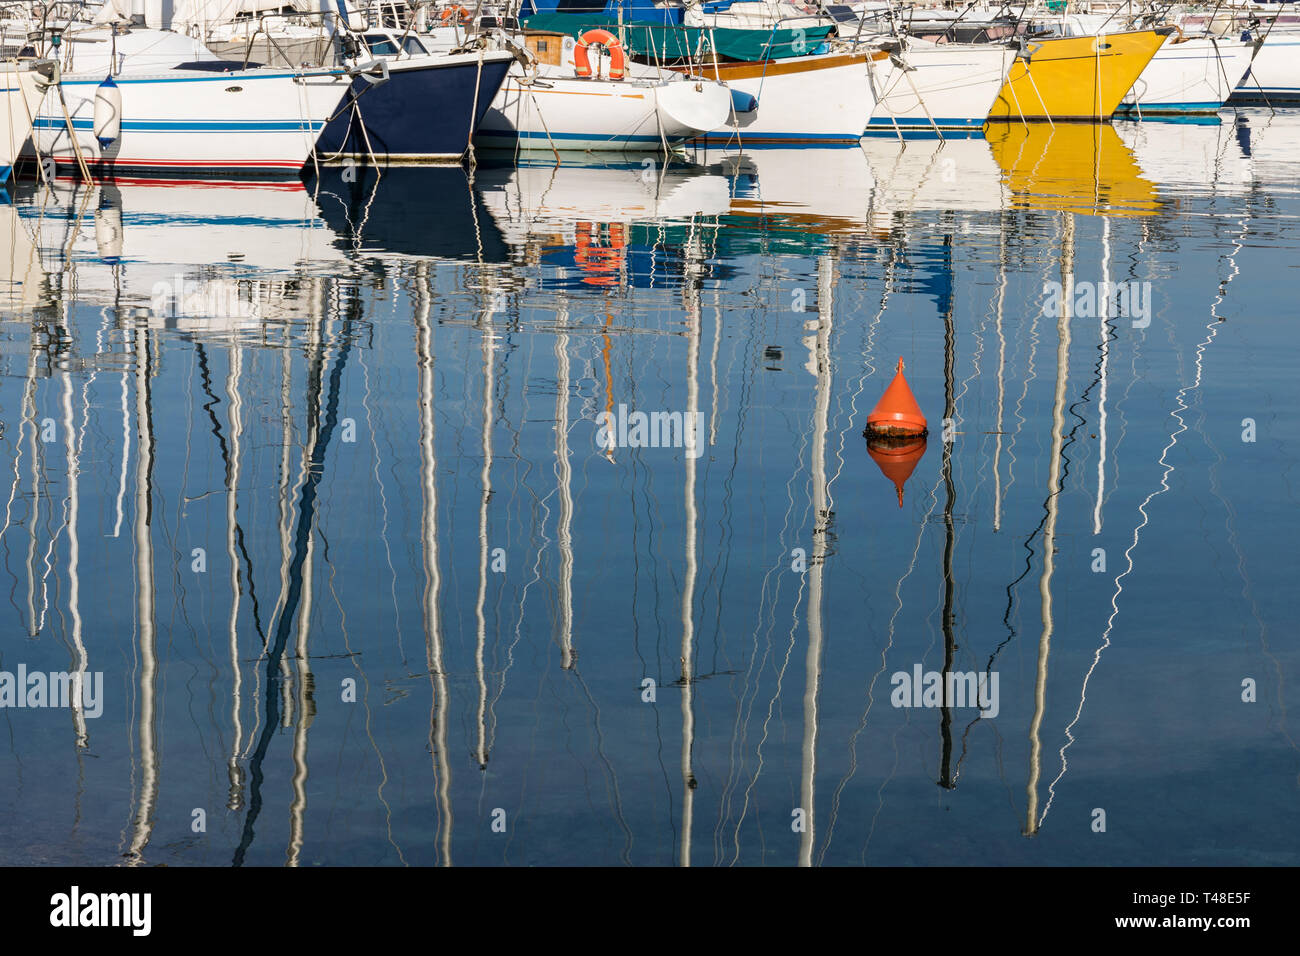 Colorful boats reflecting in the water - Stock Image